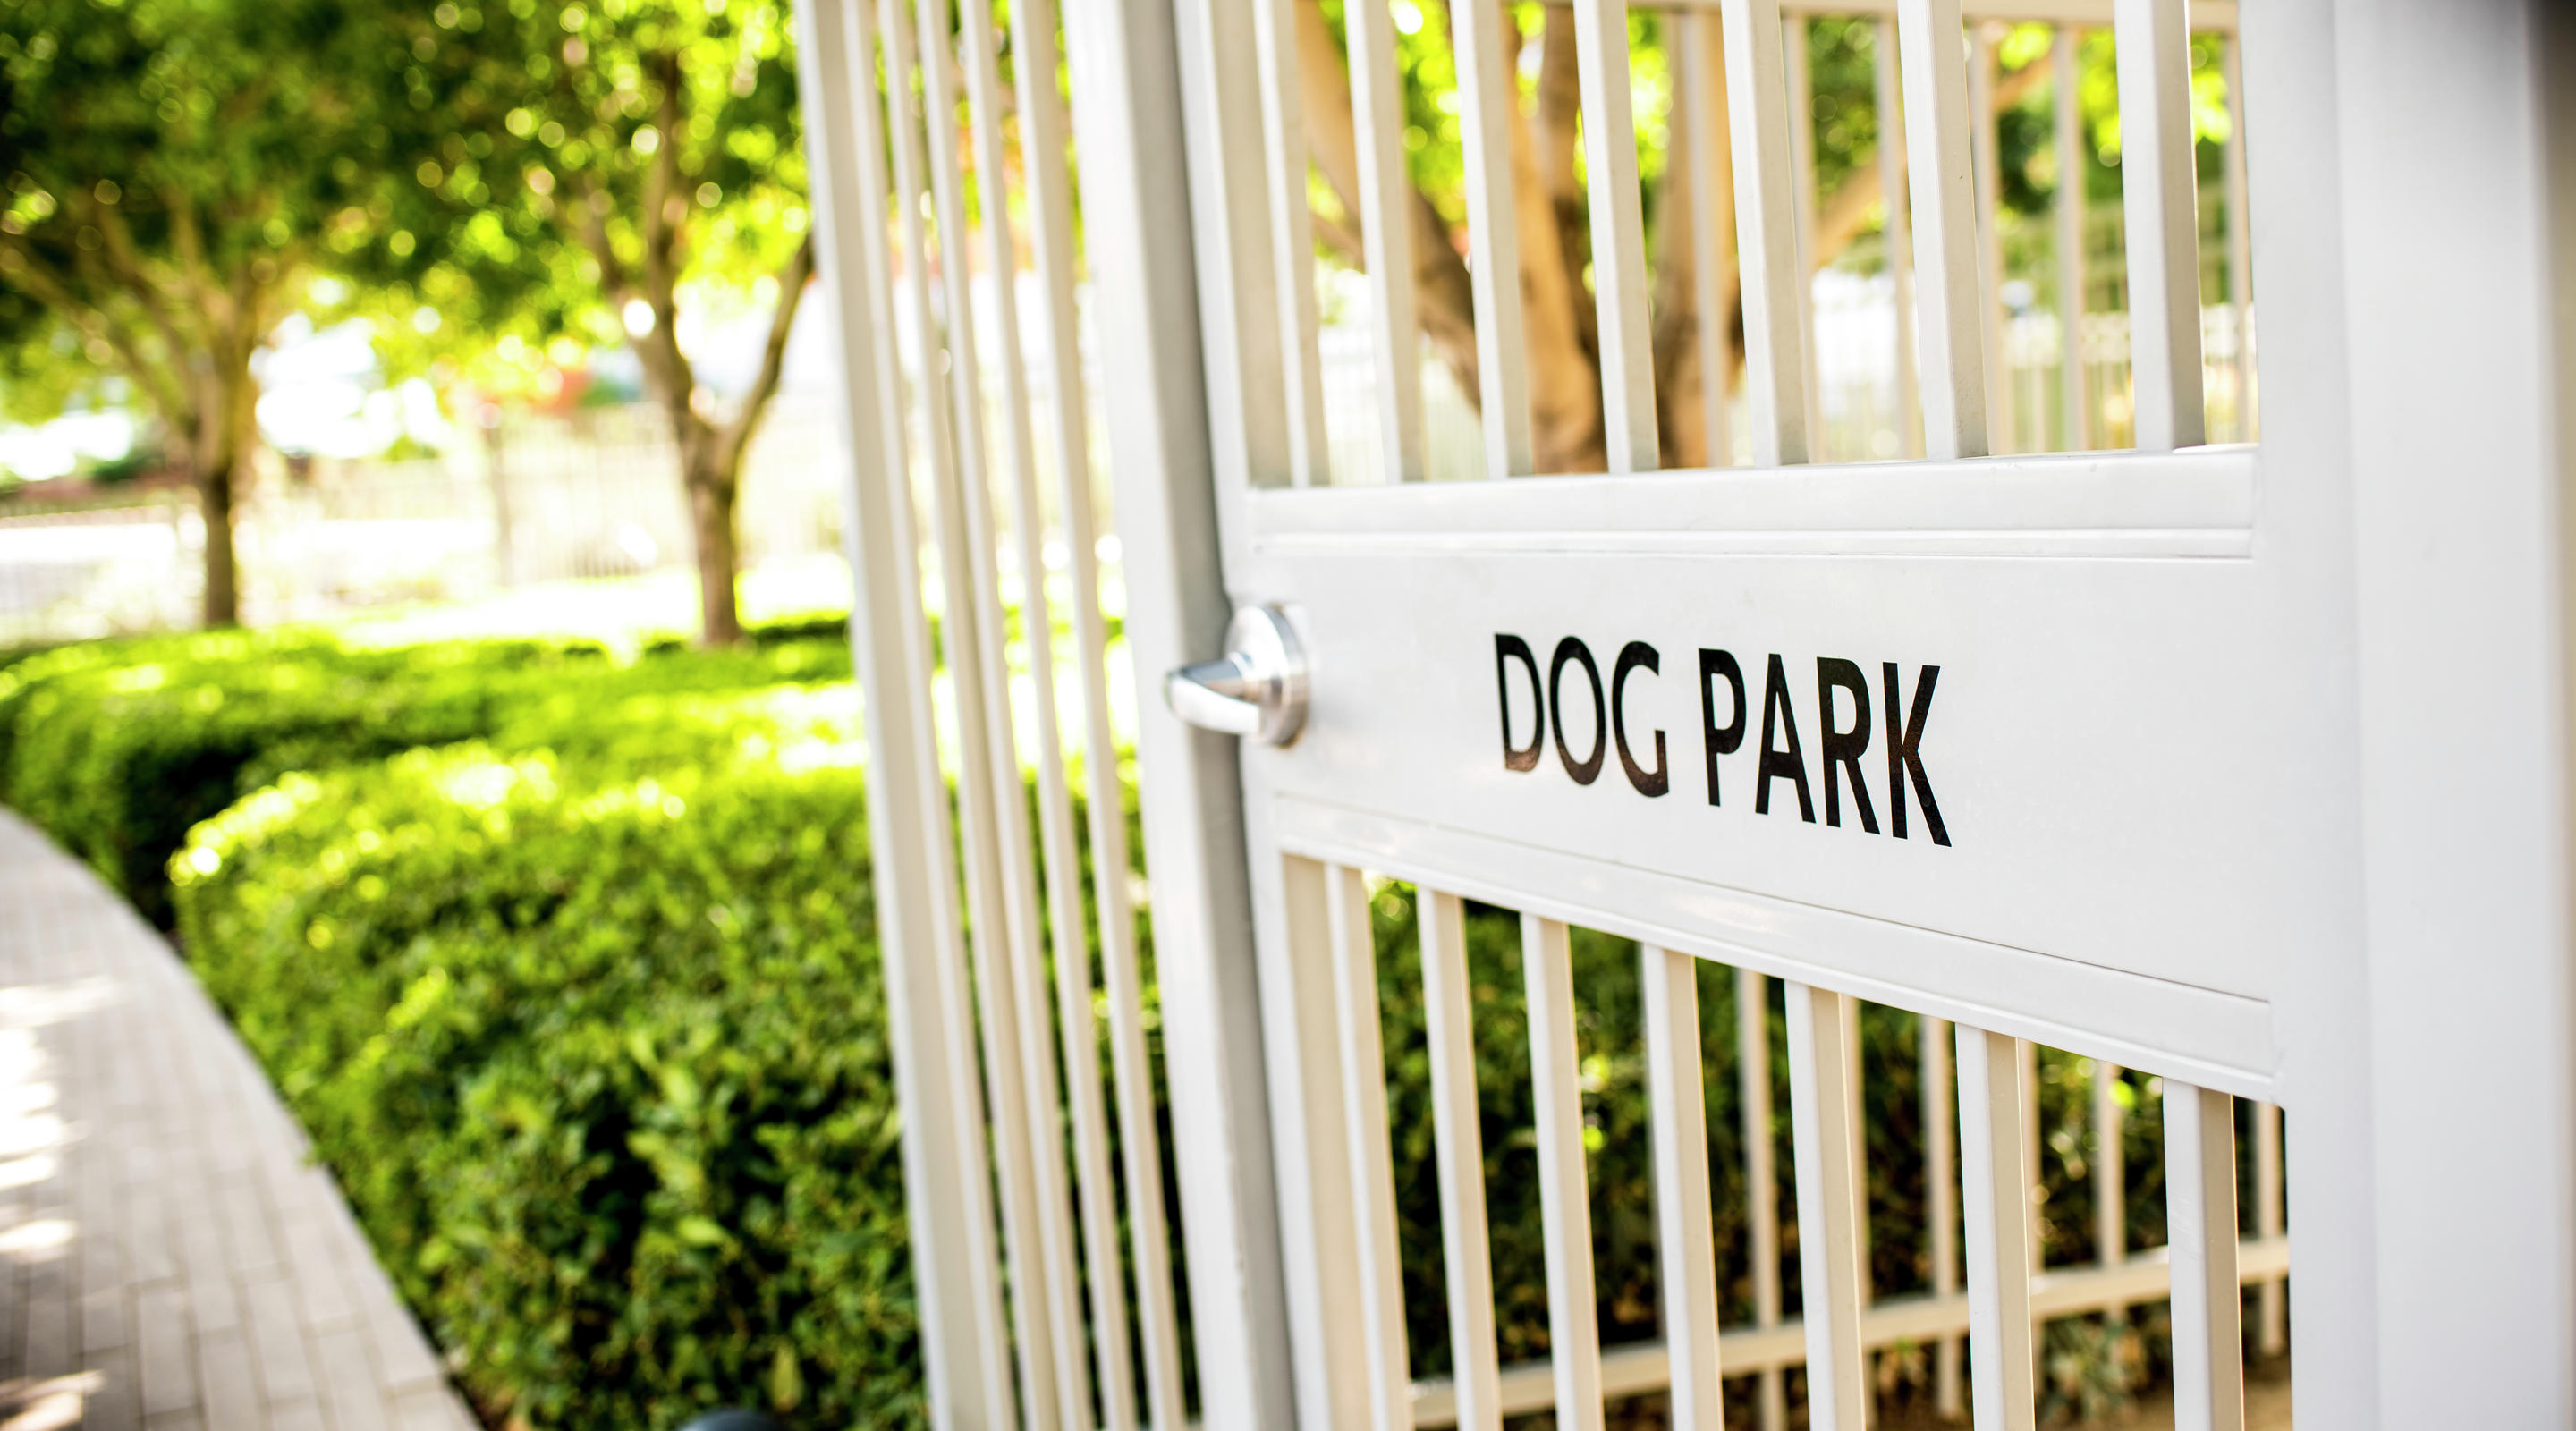 We've designated special suites for guests accompanied by their trusty pooches, and set aside a lovely park for morning walks.